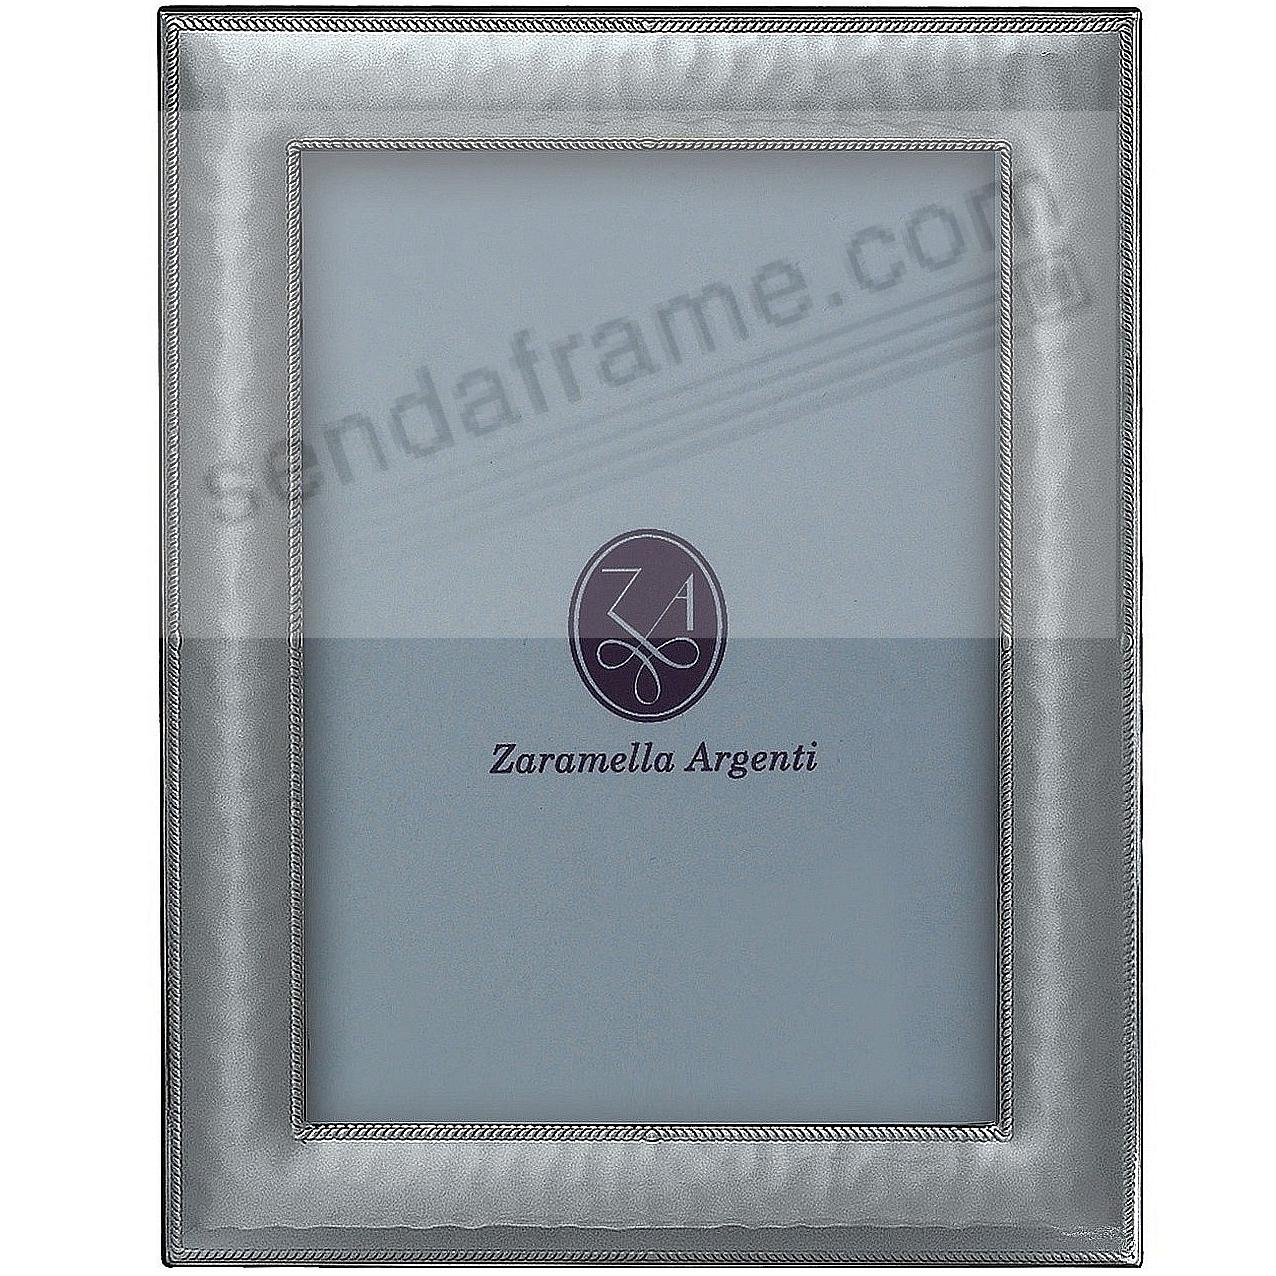 PARIS hammered Sterling Silver with braid border Wallet Size frame by Zaramella Argenti®